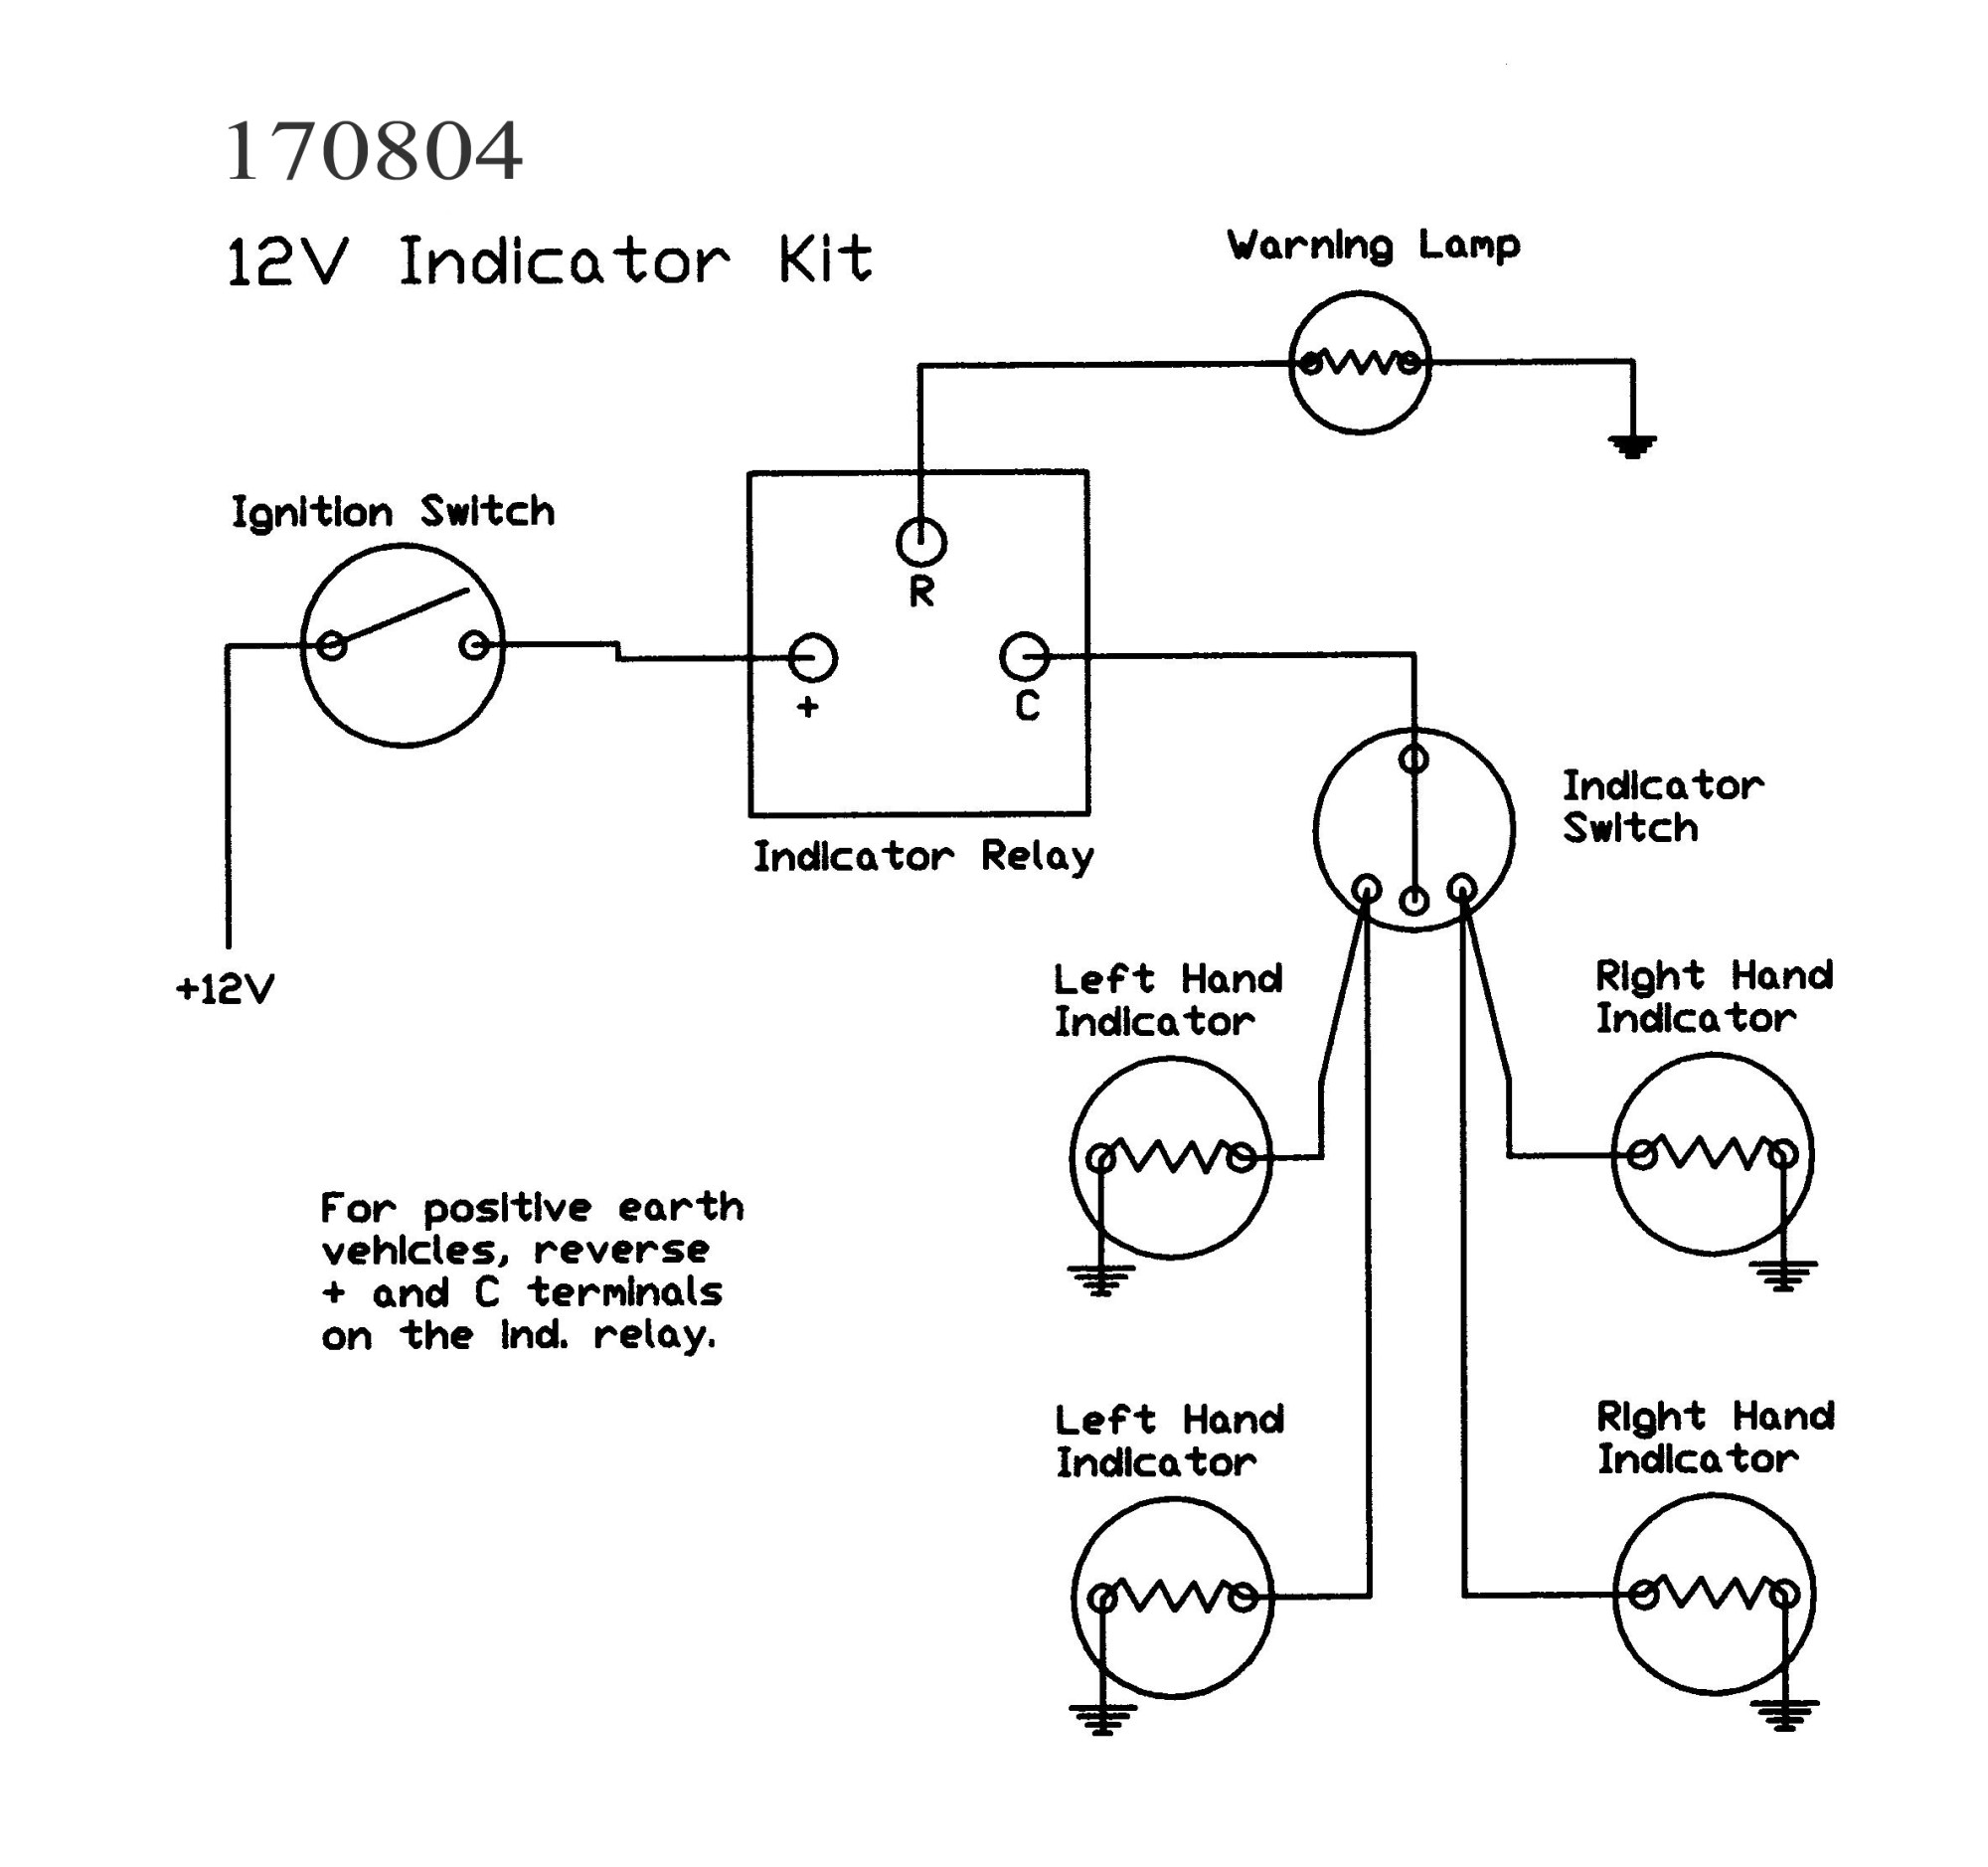 hight resolution of indicator kits without lamps wiring diagram motorcycle indicators 170803 jpg 170804 12v